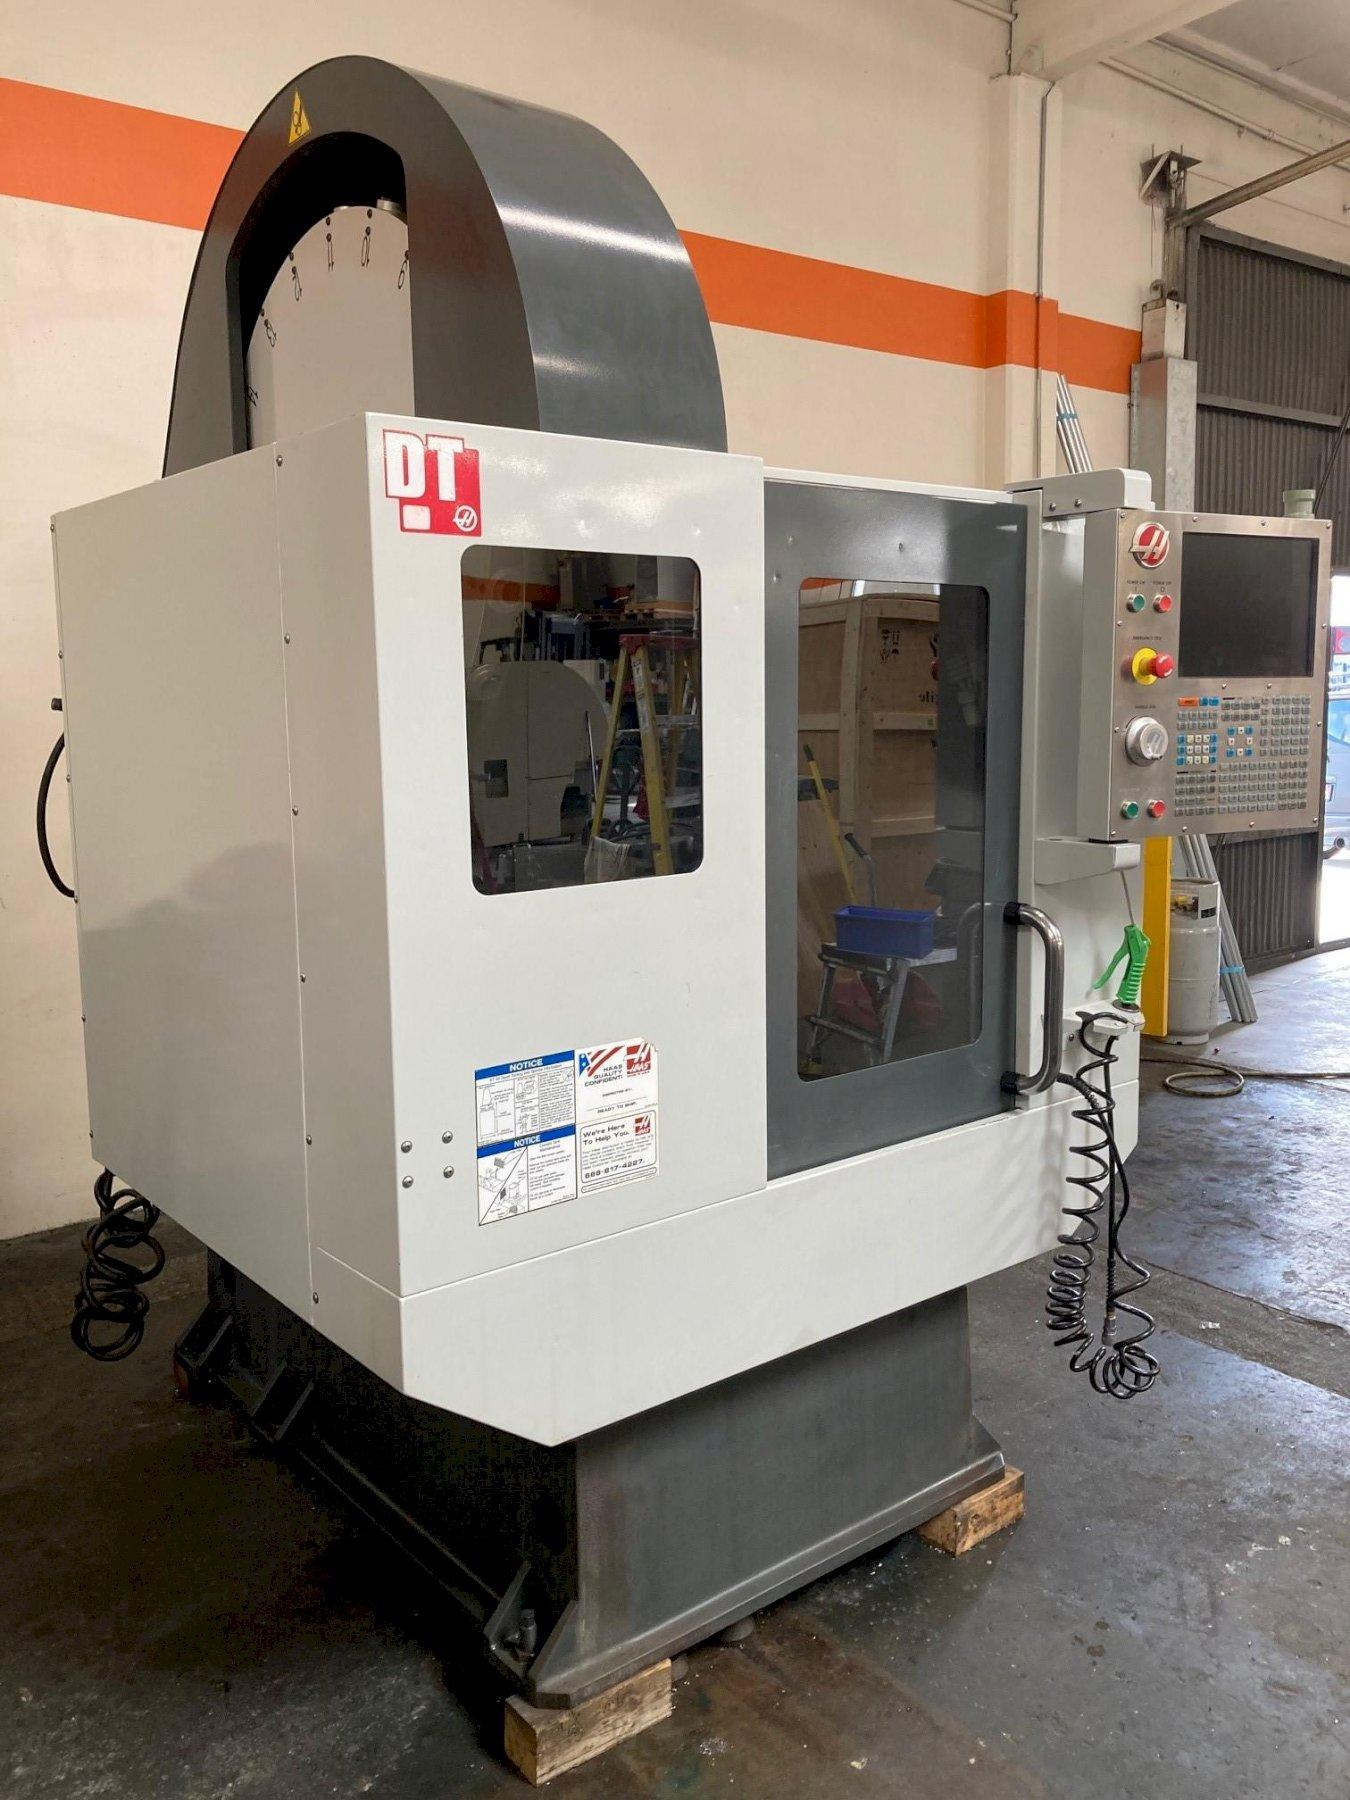 Haas DT-1 VMC 2010 with: Haas CNC Control, 4th Axis Drive, Programmable Coolant, Chip Auger, and Coolant System.